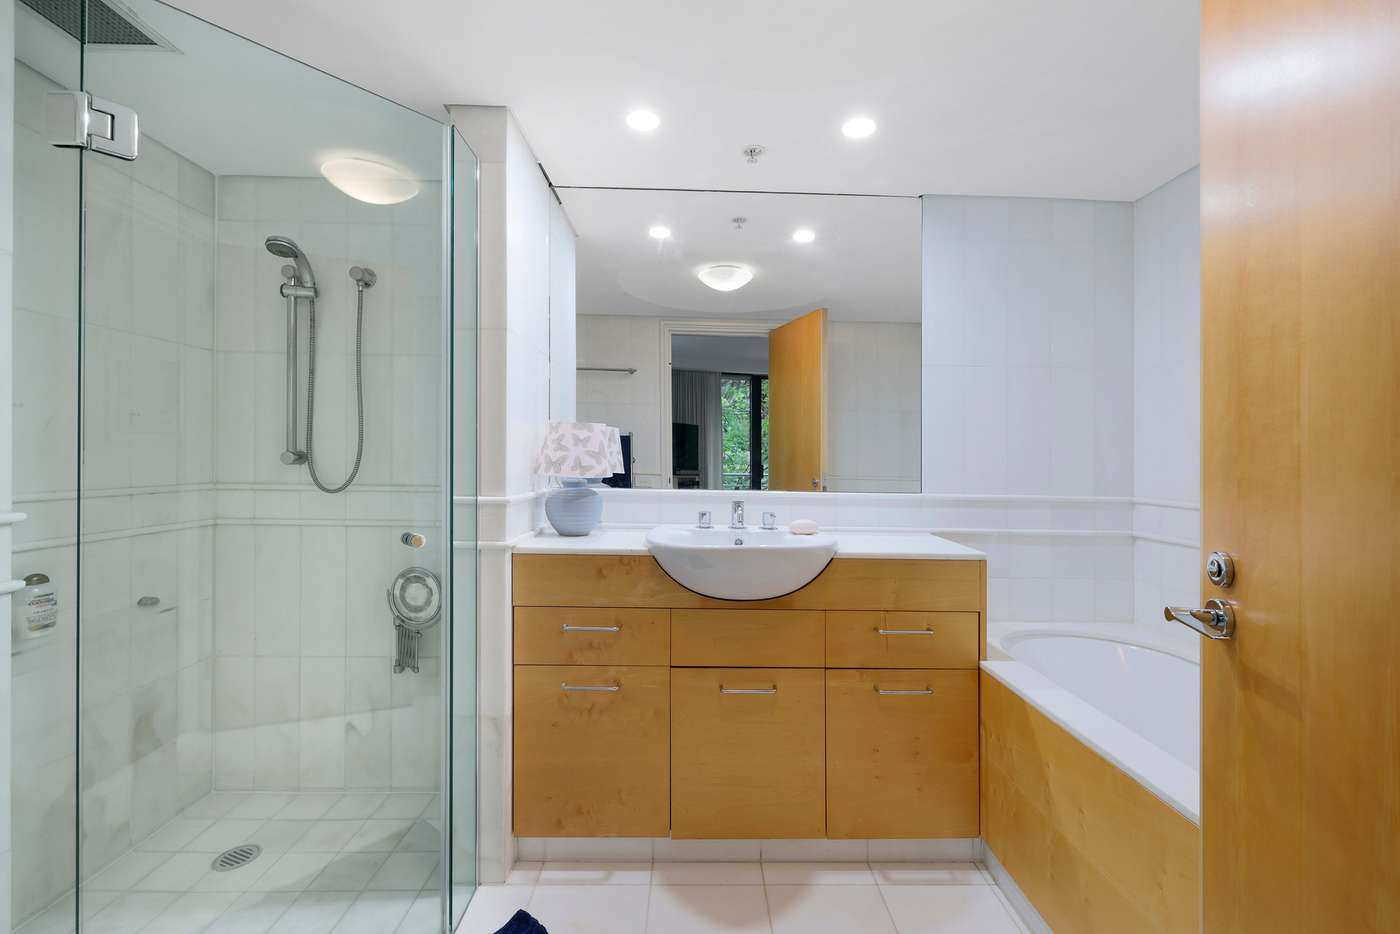 Sixth view of Homely apartment listing, 33/7 Macquarie Street, Sydney NSW 2000